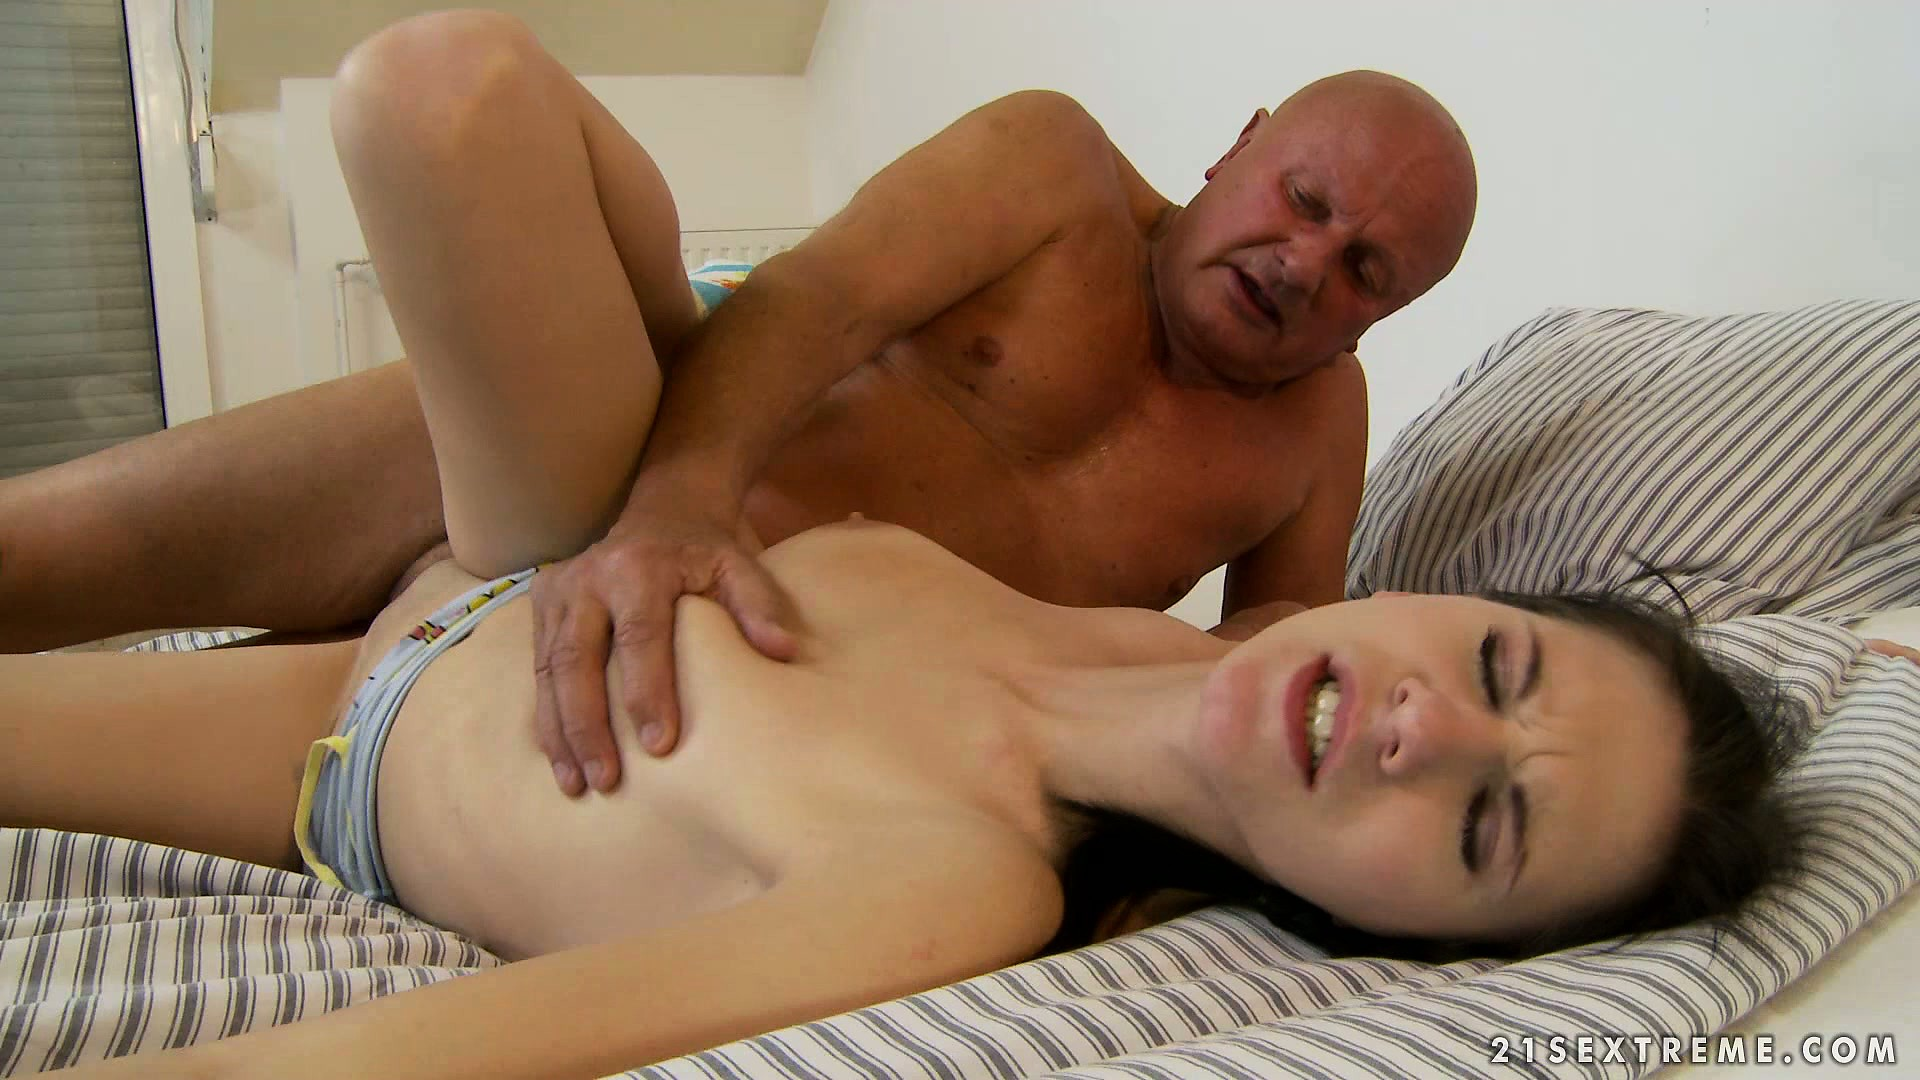 Sex Movie of Horny Old Bald Man Bends Her Over And Bangs Her Sweet Young Twat